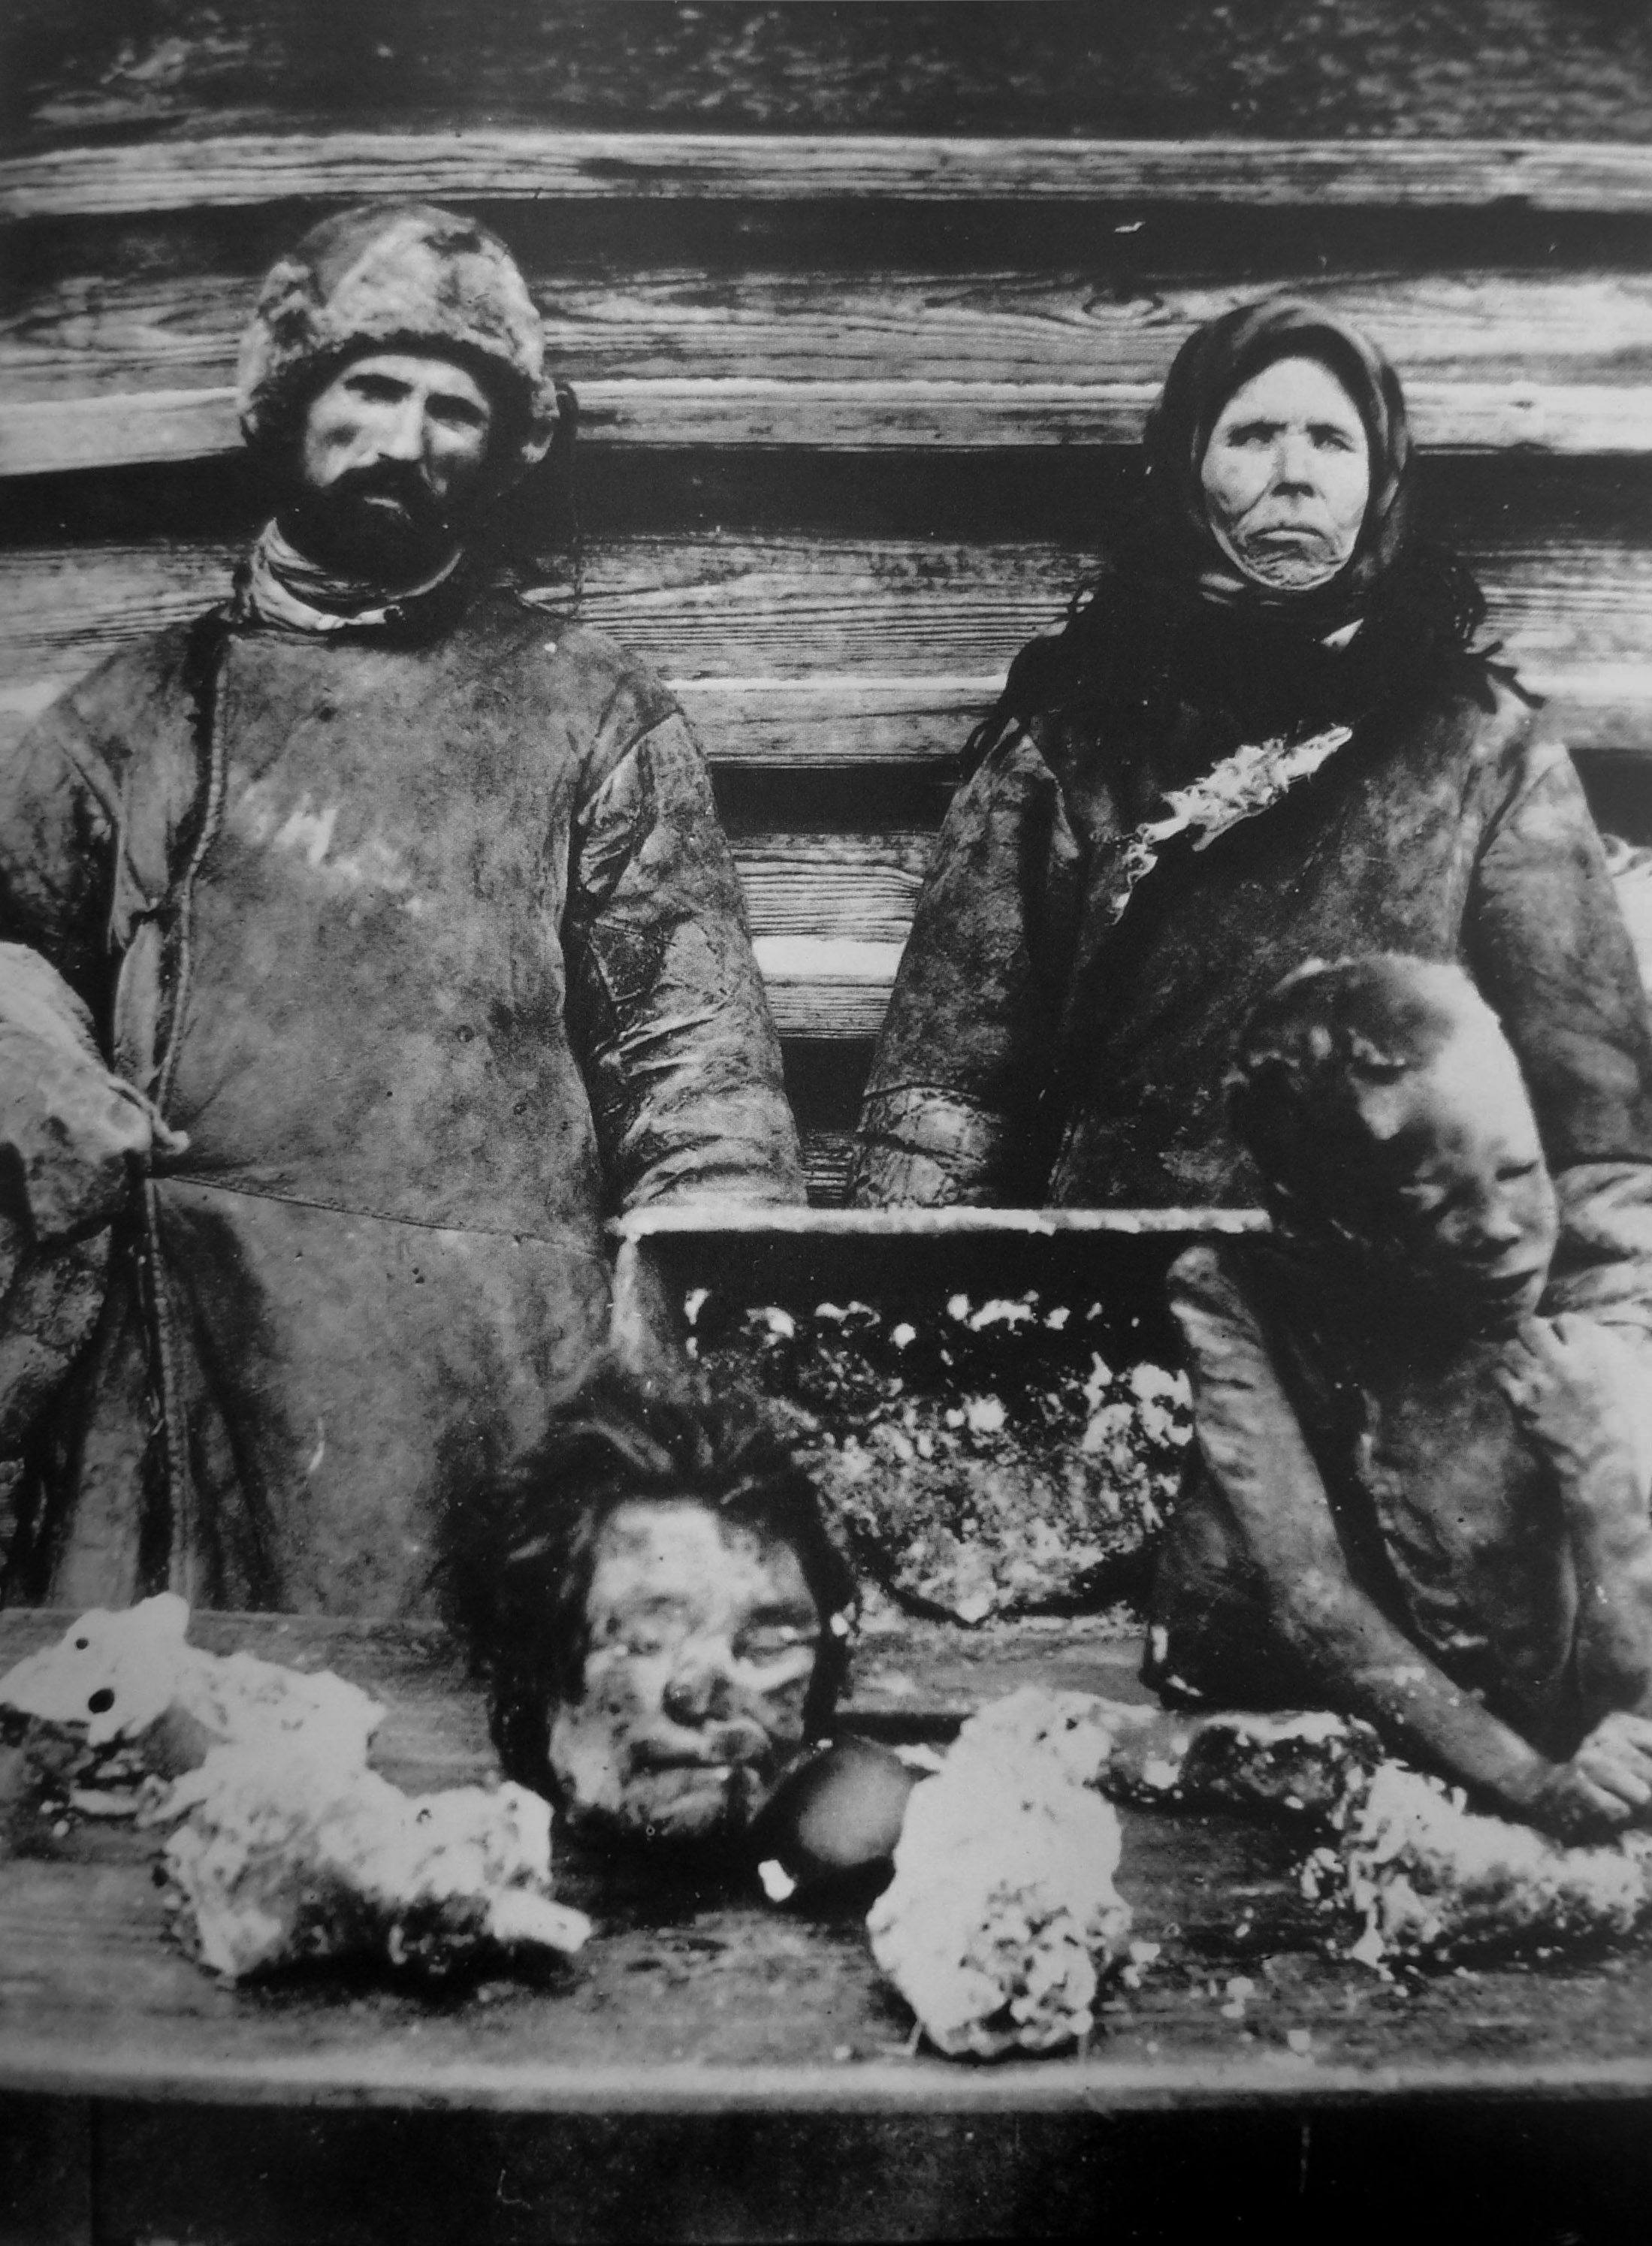 cannibalism File:Cannibalism during Russian famine 1921.jpg